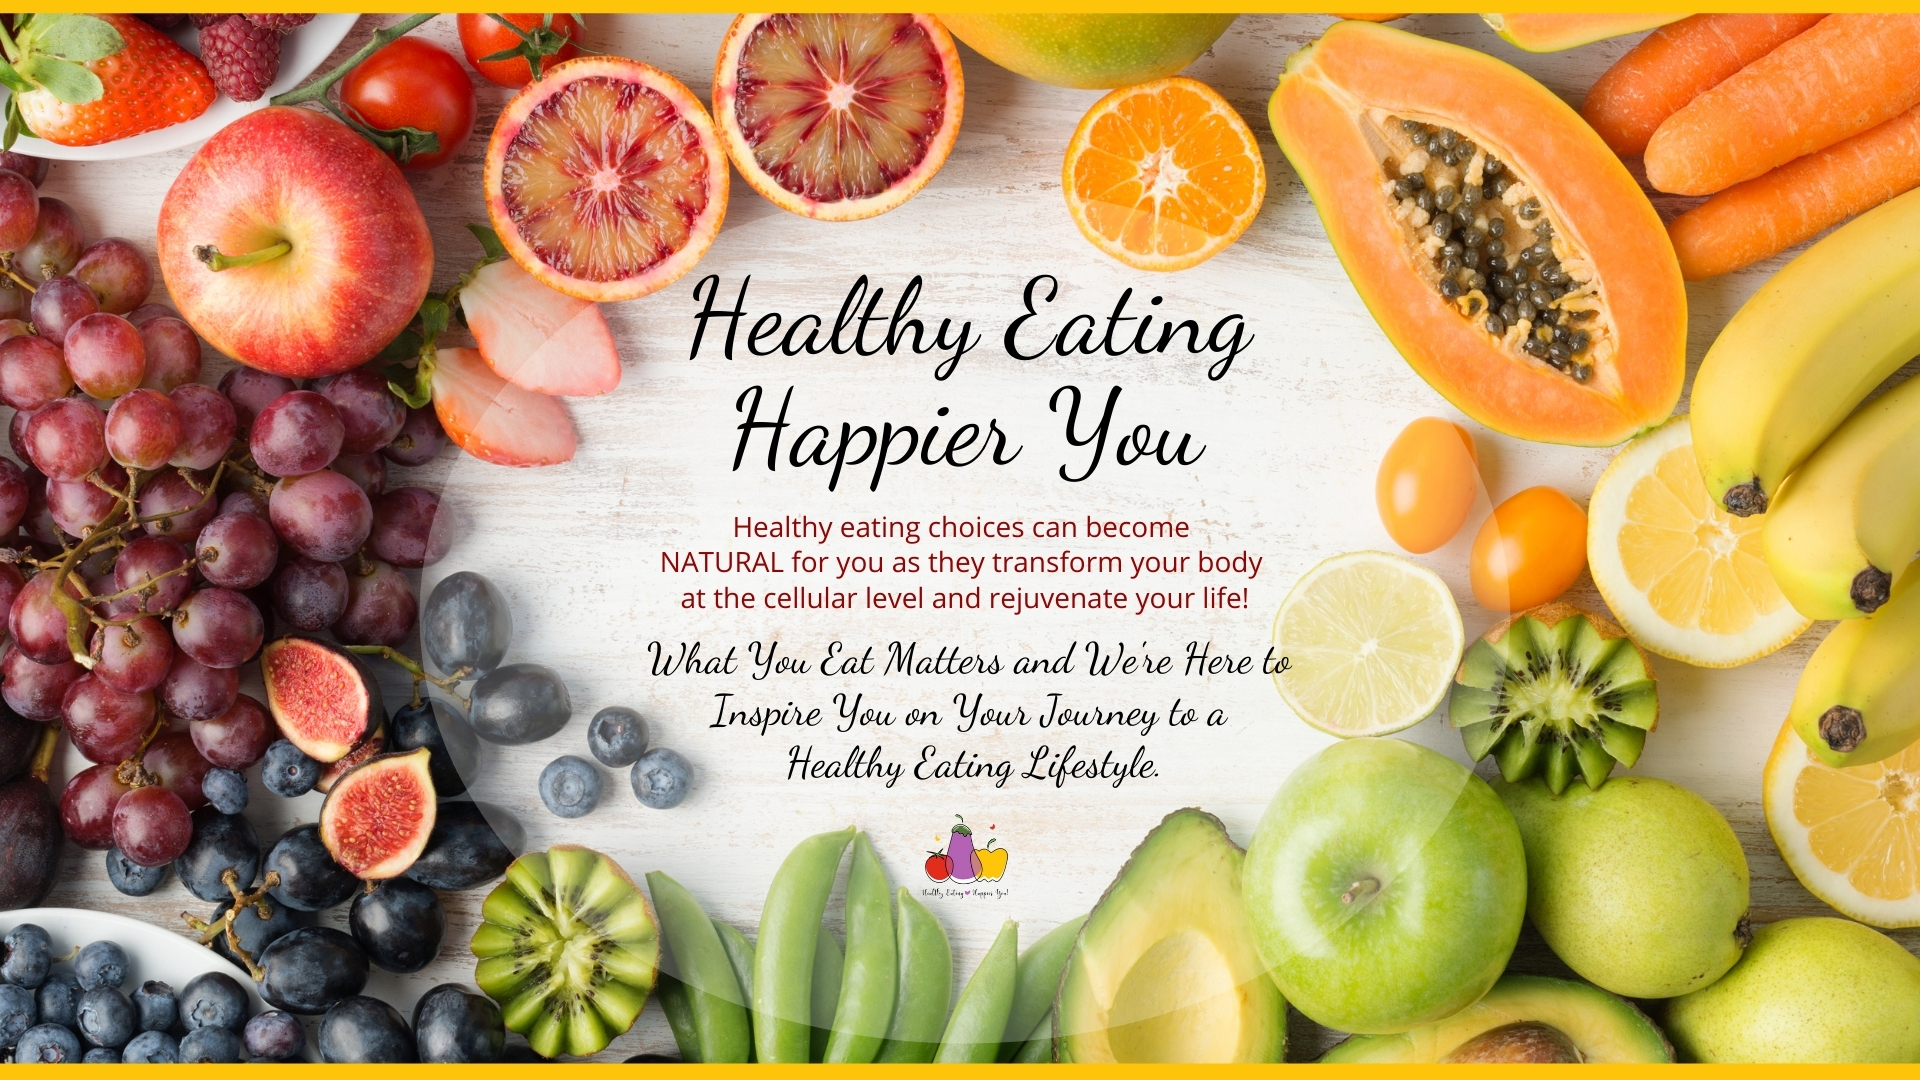 Healthy Eating Happier You - Healthy eating choices can become NATURAL for you as they transform your body at a cellular level and rejuvenate your life.